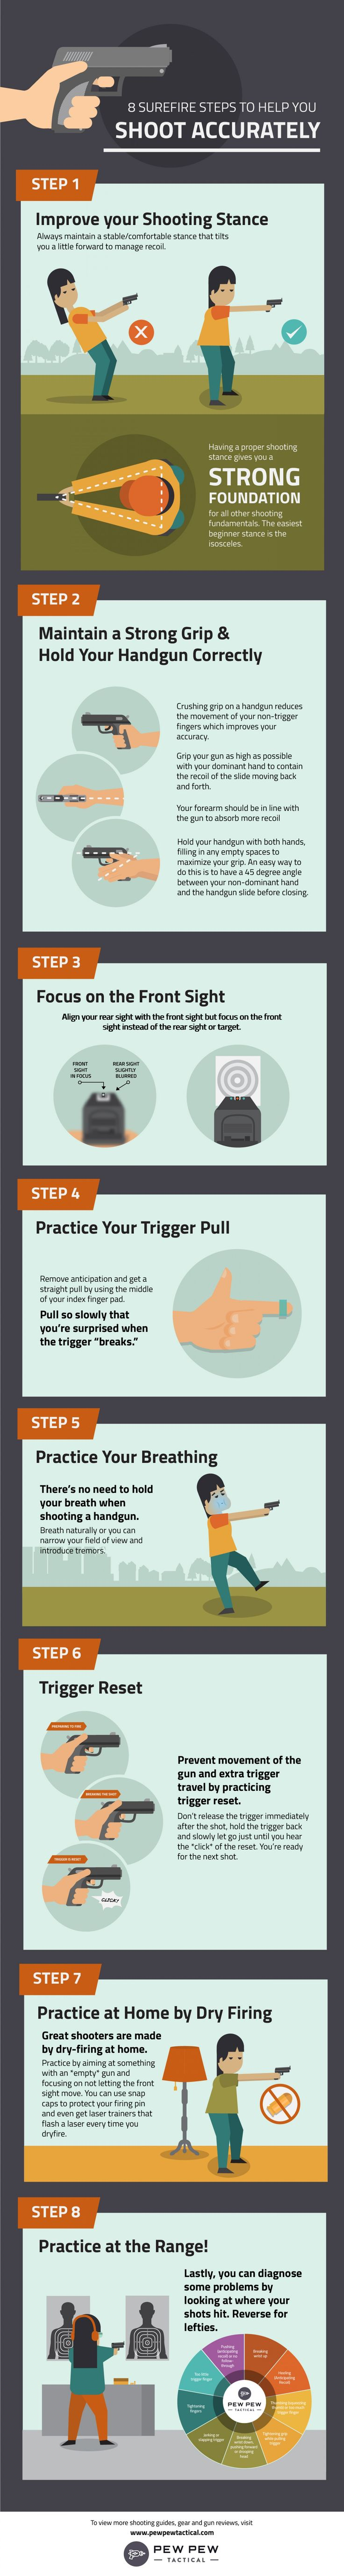 Infographic: 8 Ways to Improve Your Handgun Accuracy